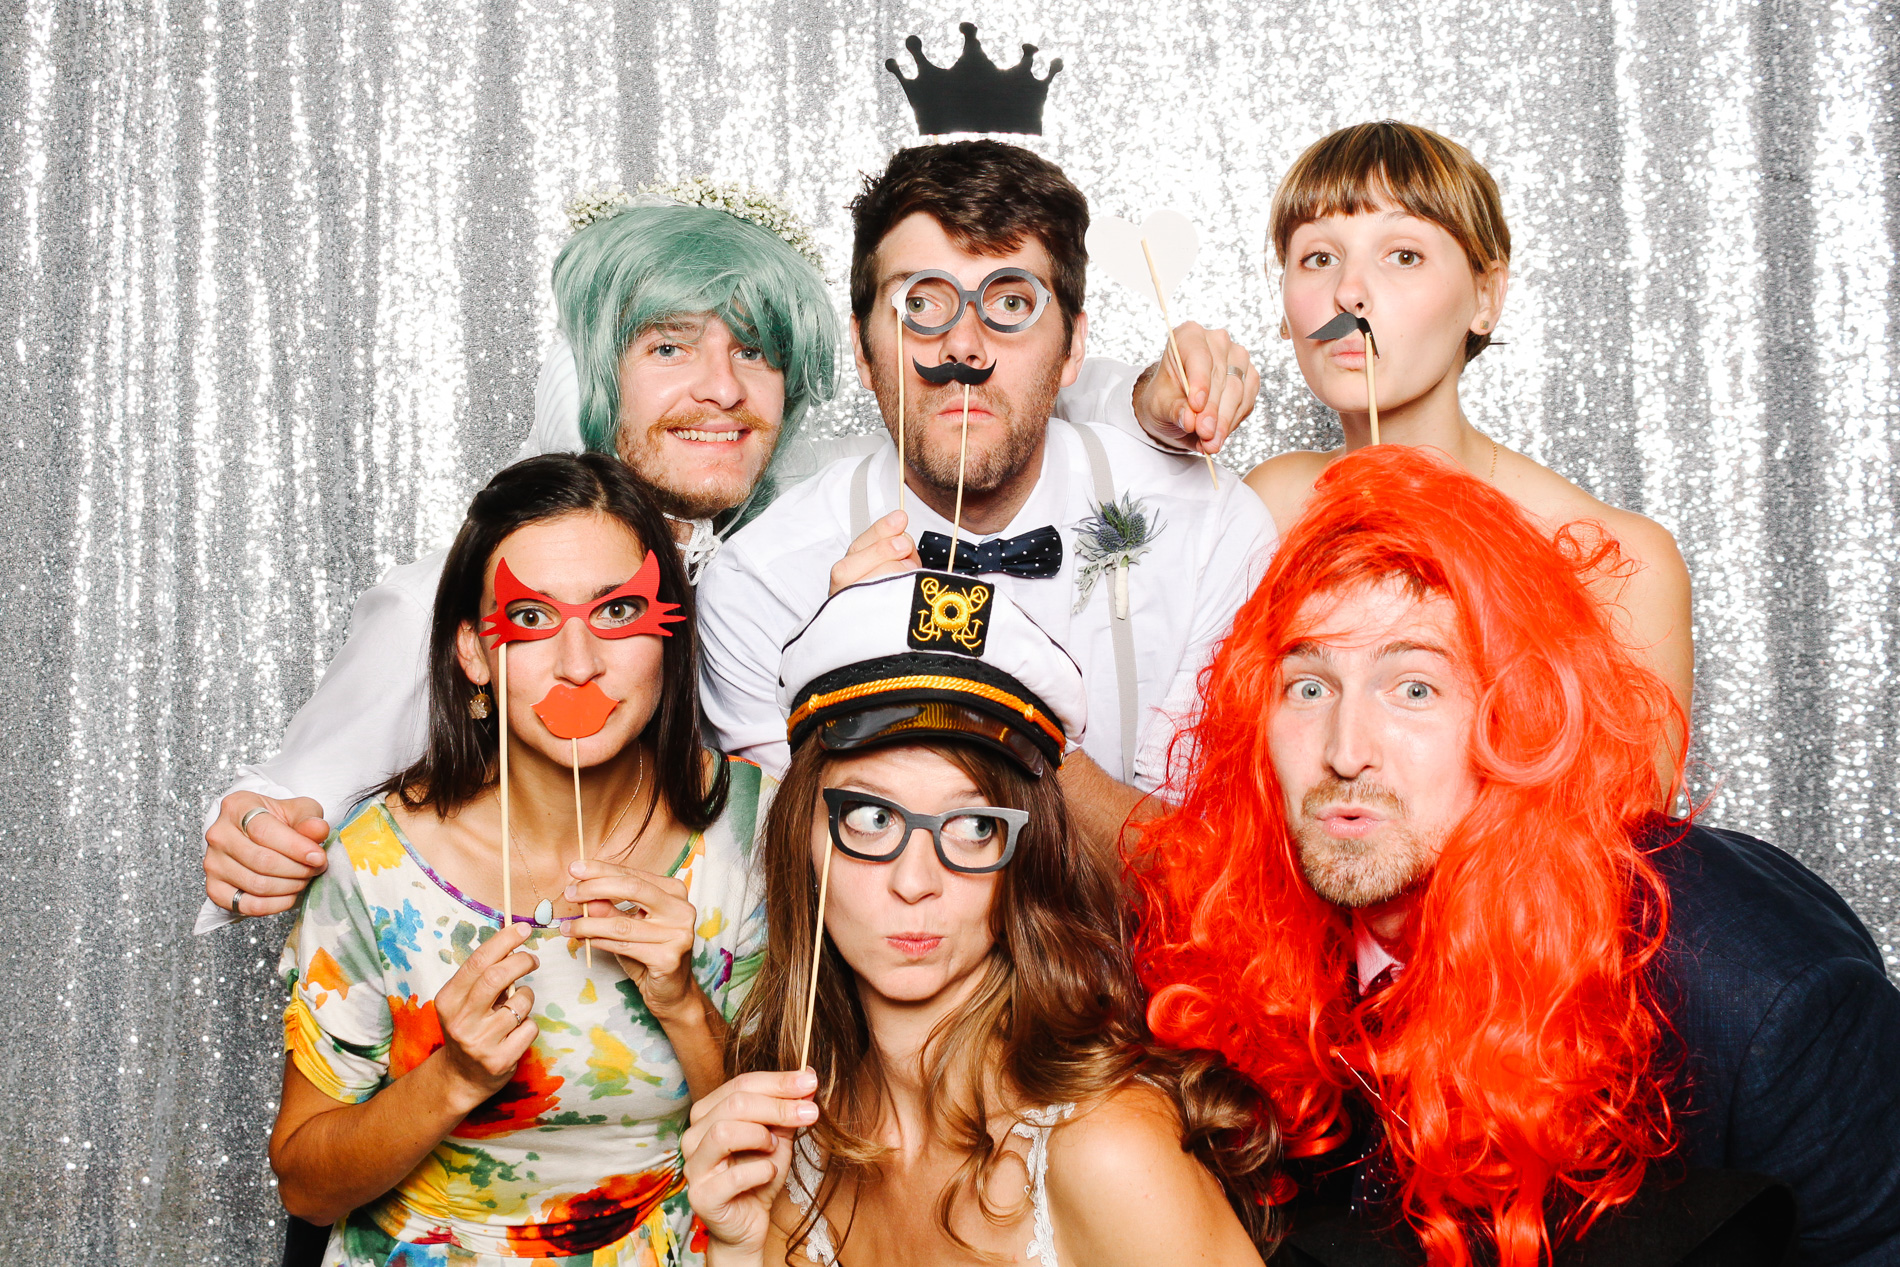 grin-and-bear-booth-photobooth-184418.jpg